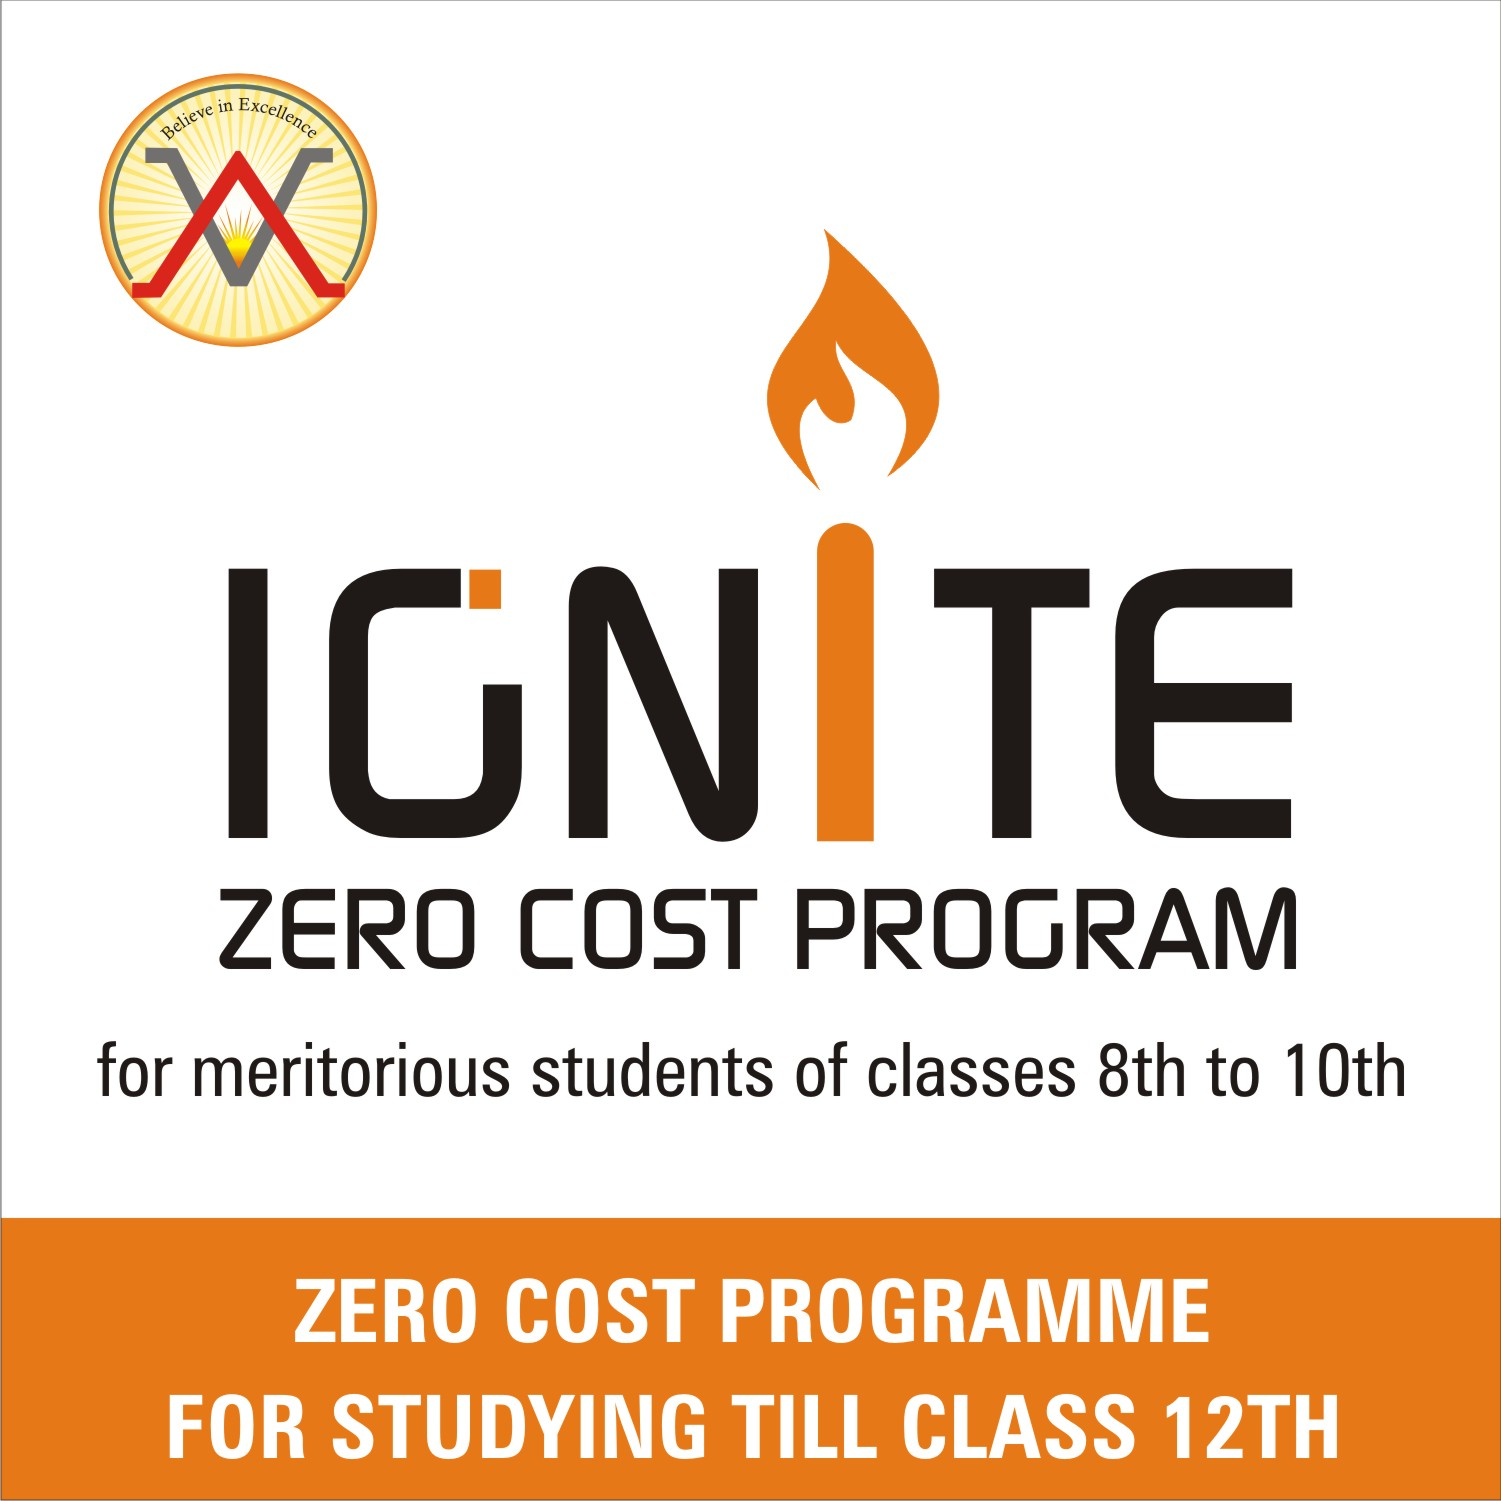 IGNITE ZERO COST PROGRAM